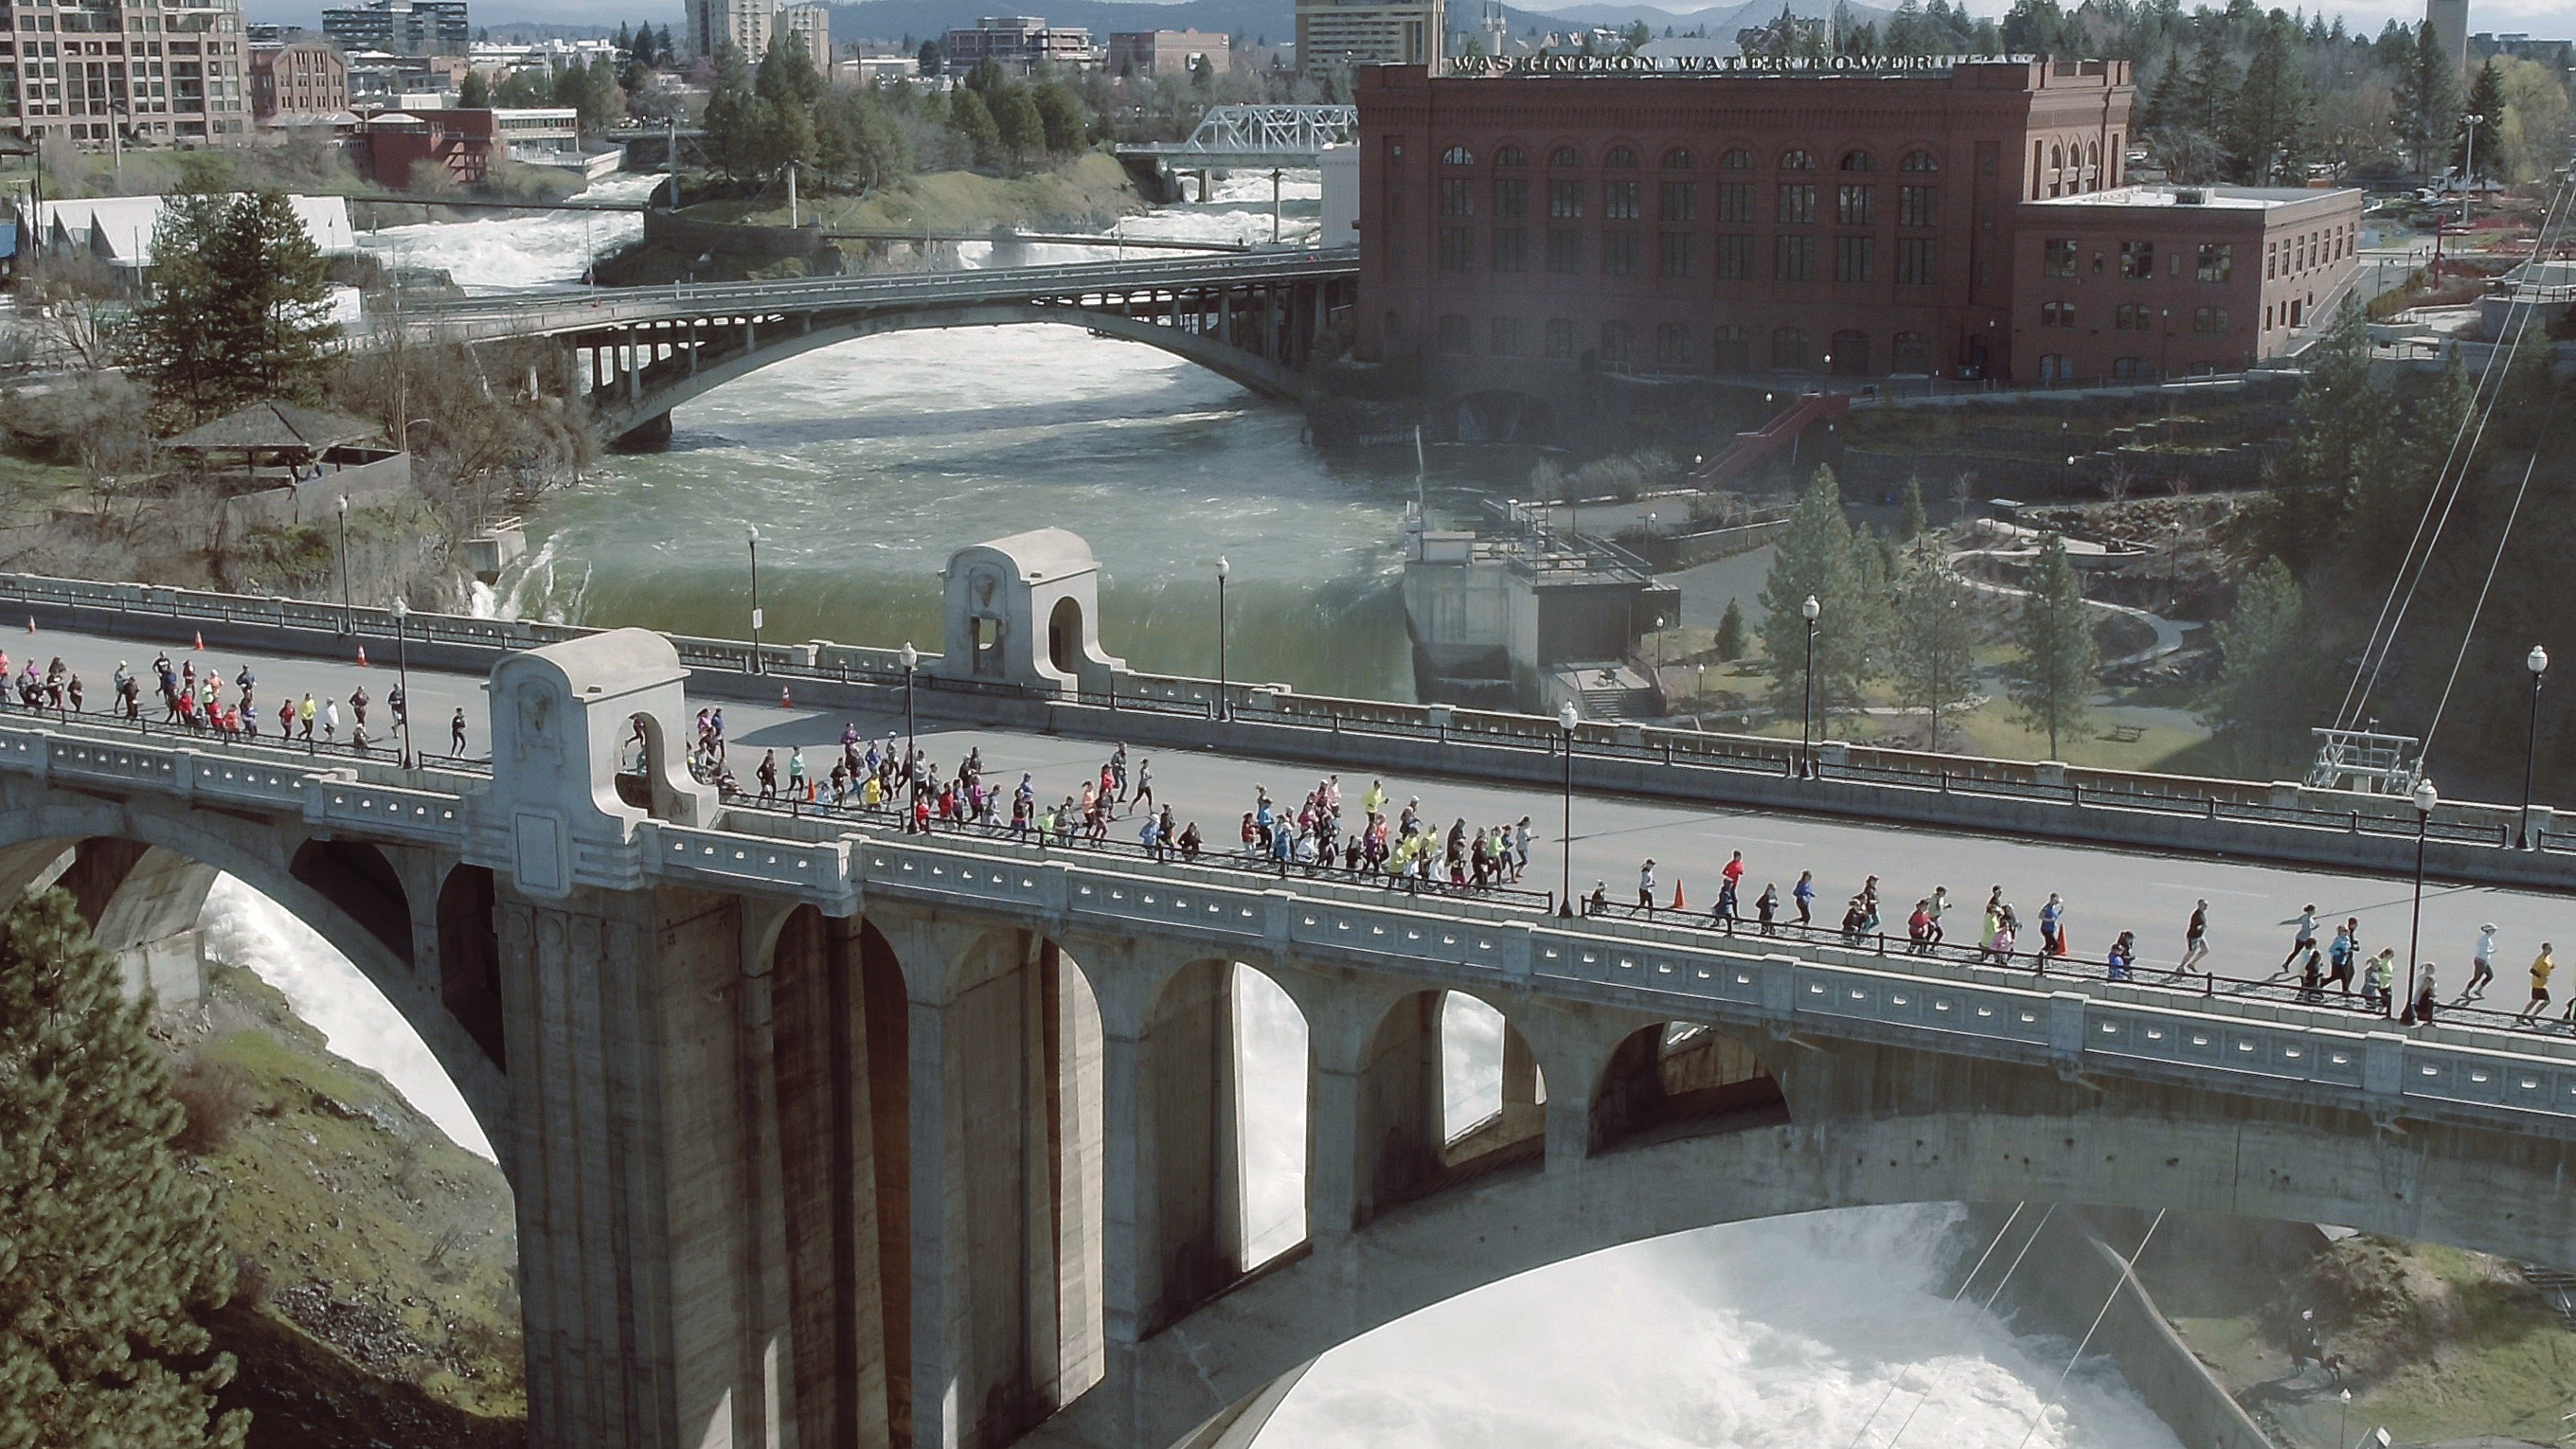 Runners cross the Spokane River (Photo from Ryan Hite)